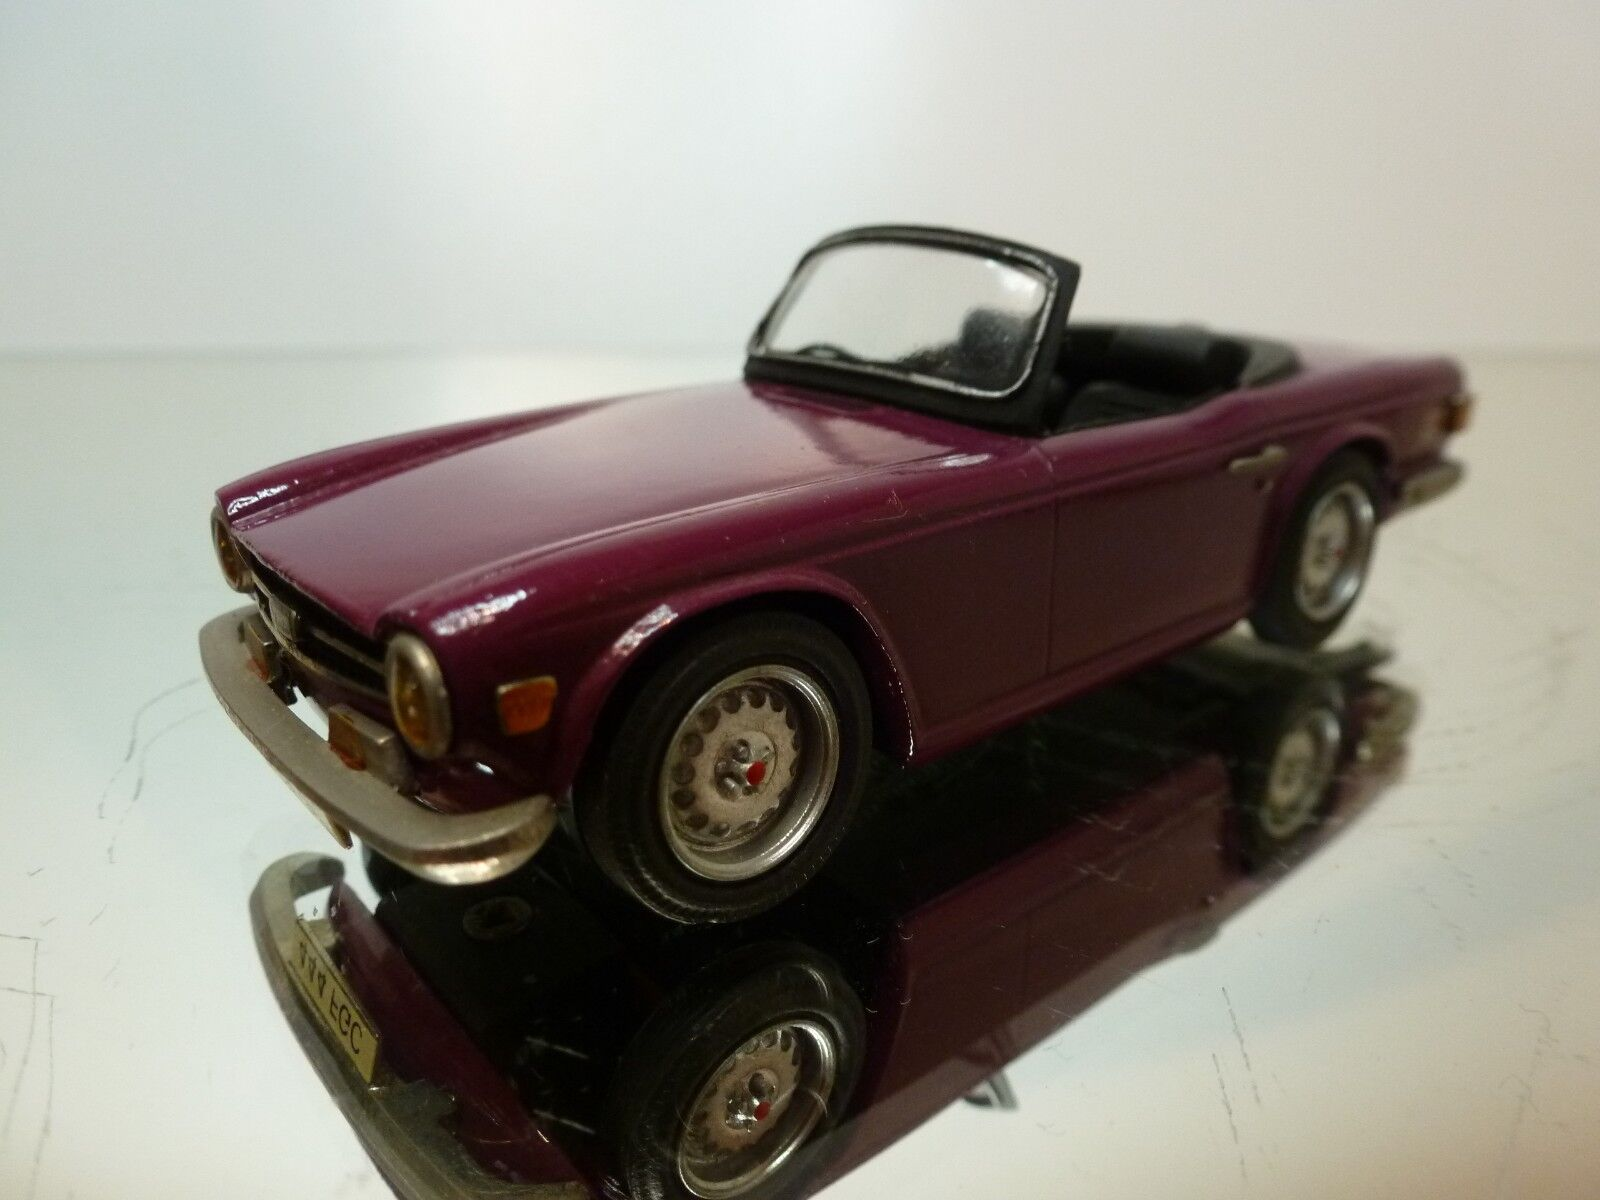 APOLLO MODELS TRIUMPH TR6 - PLUM púrpura 1 43 - VERY GOOD CONDITION - 2